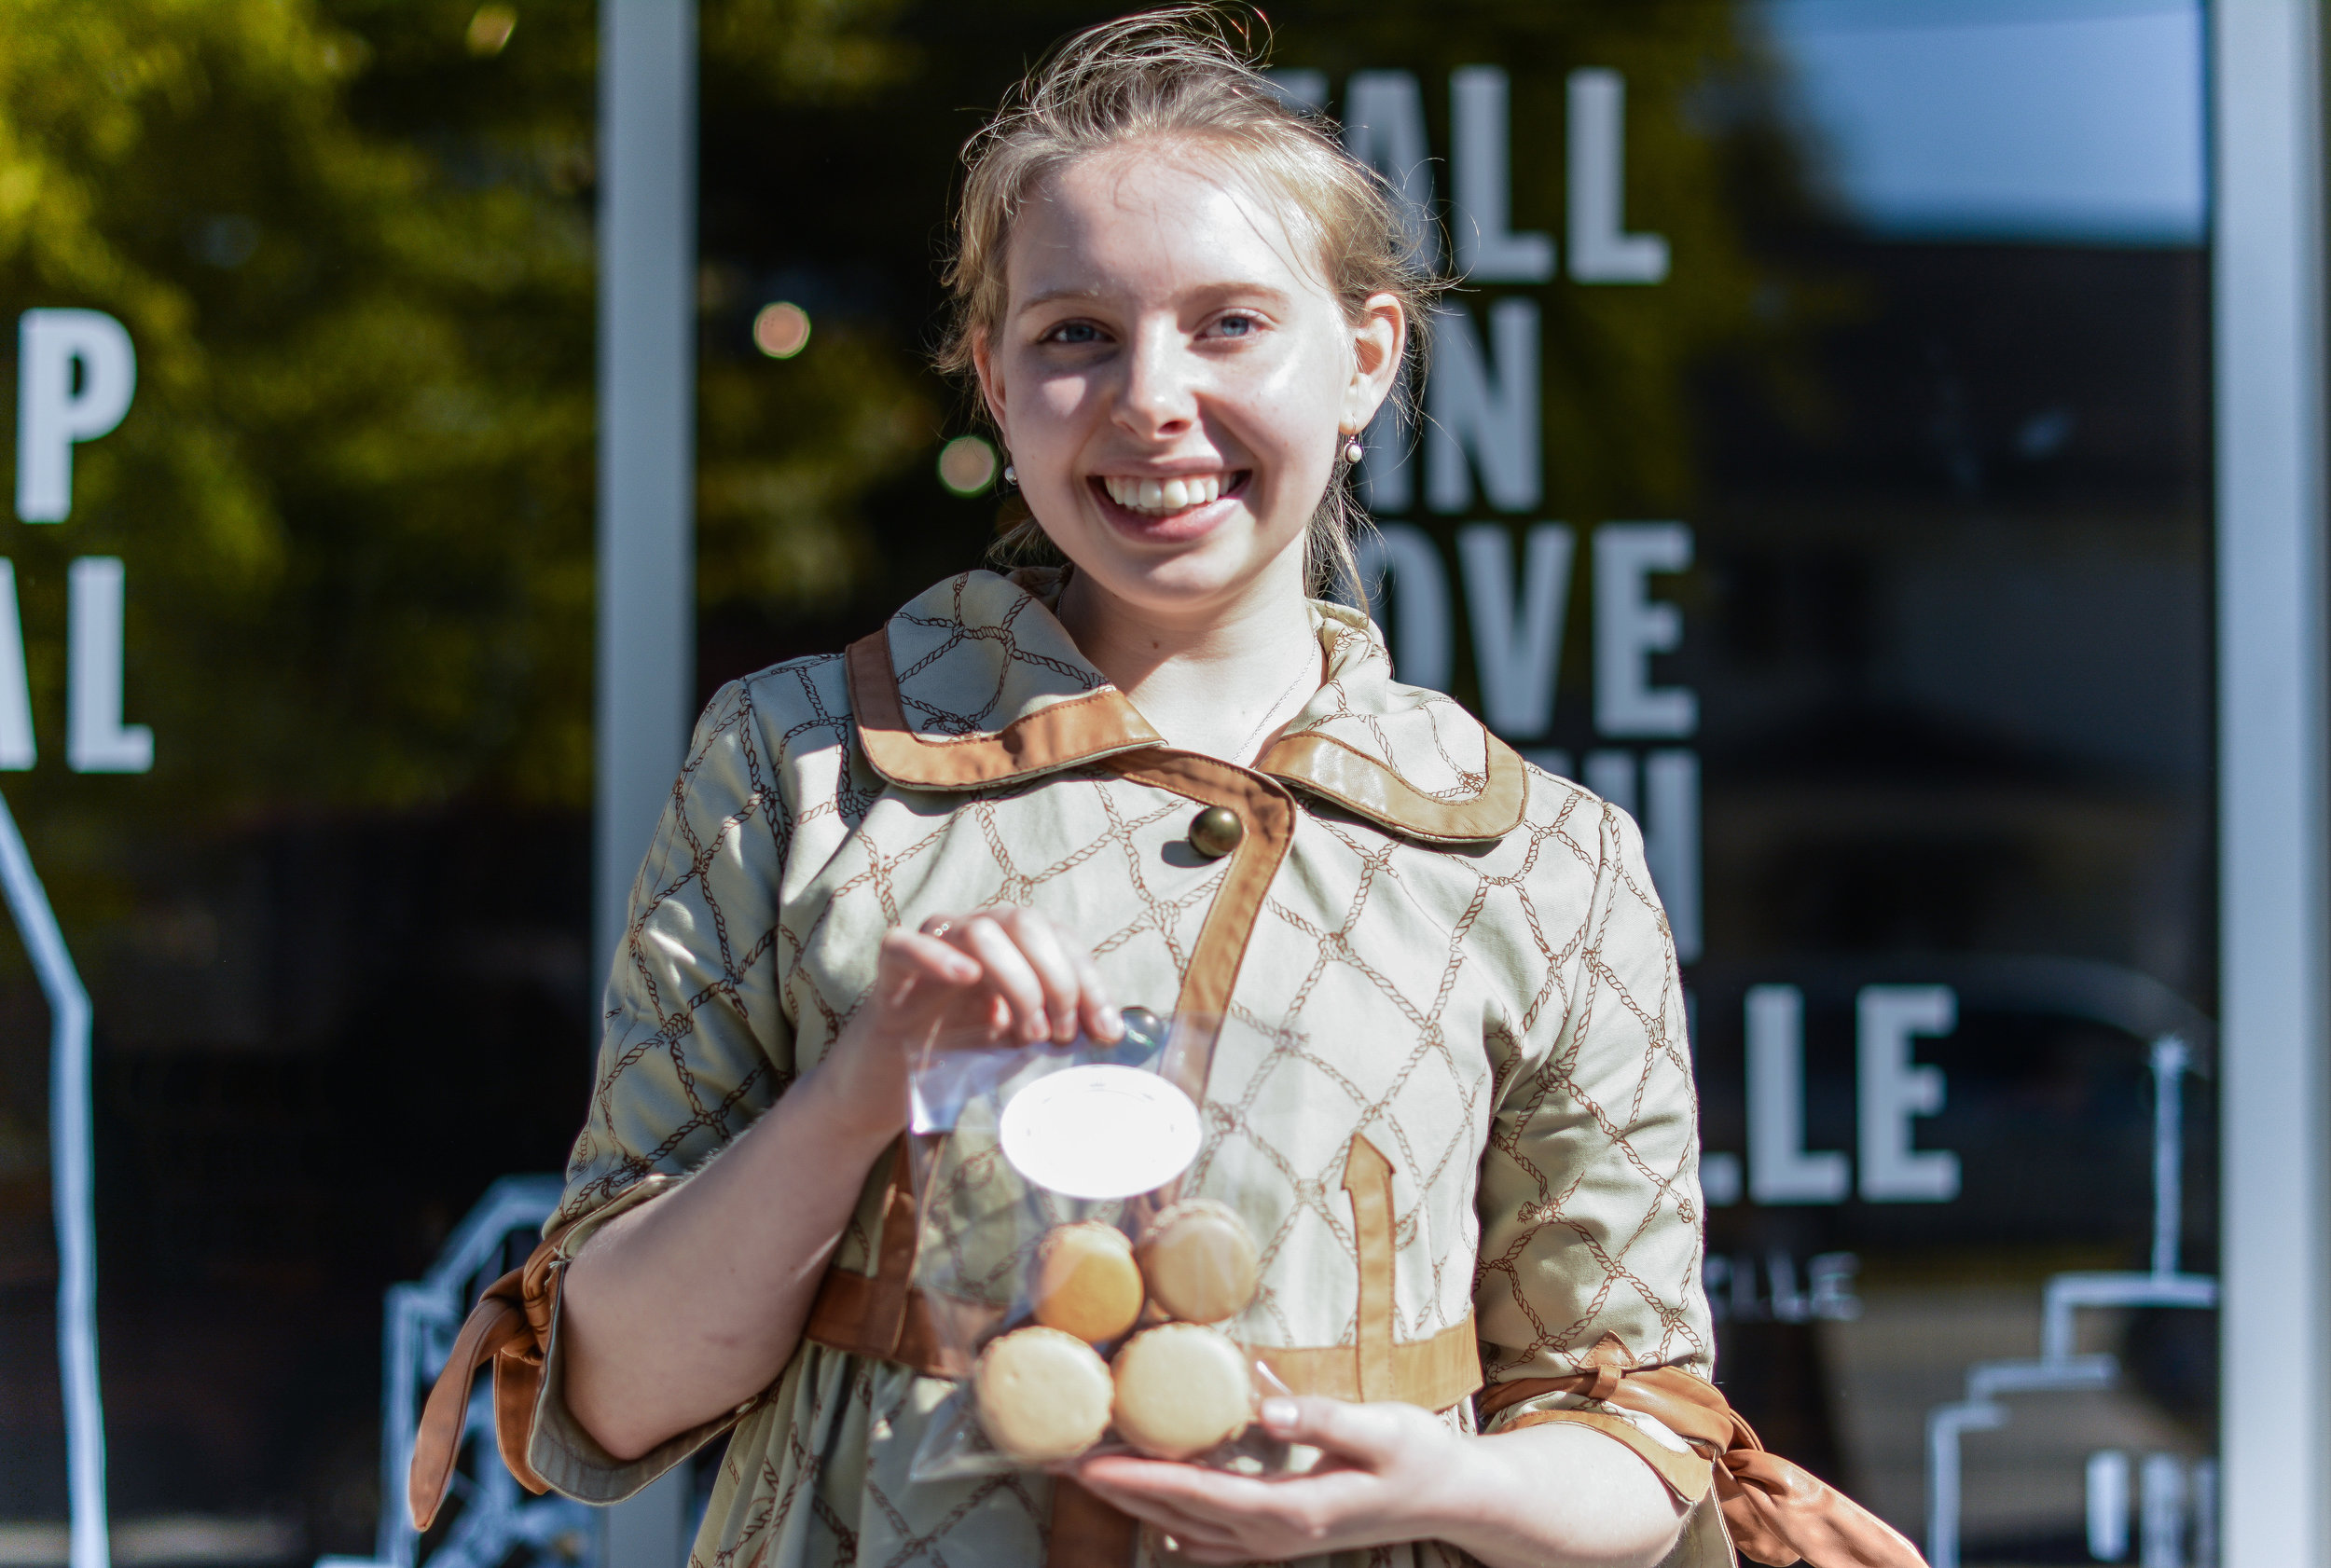 Ciel Smith shows off her own macarons, and her new company, Patisserie De Ciel.